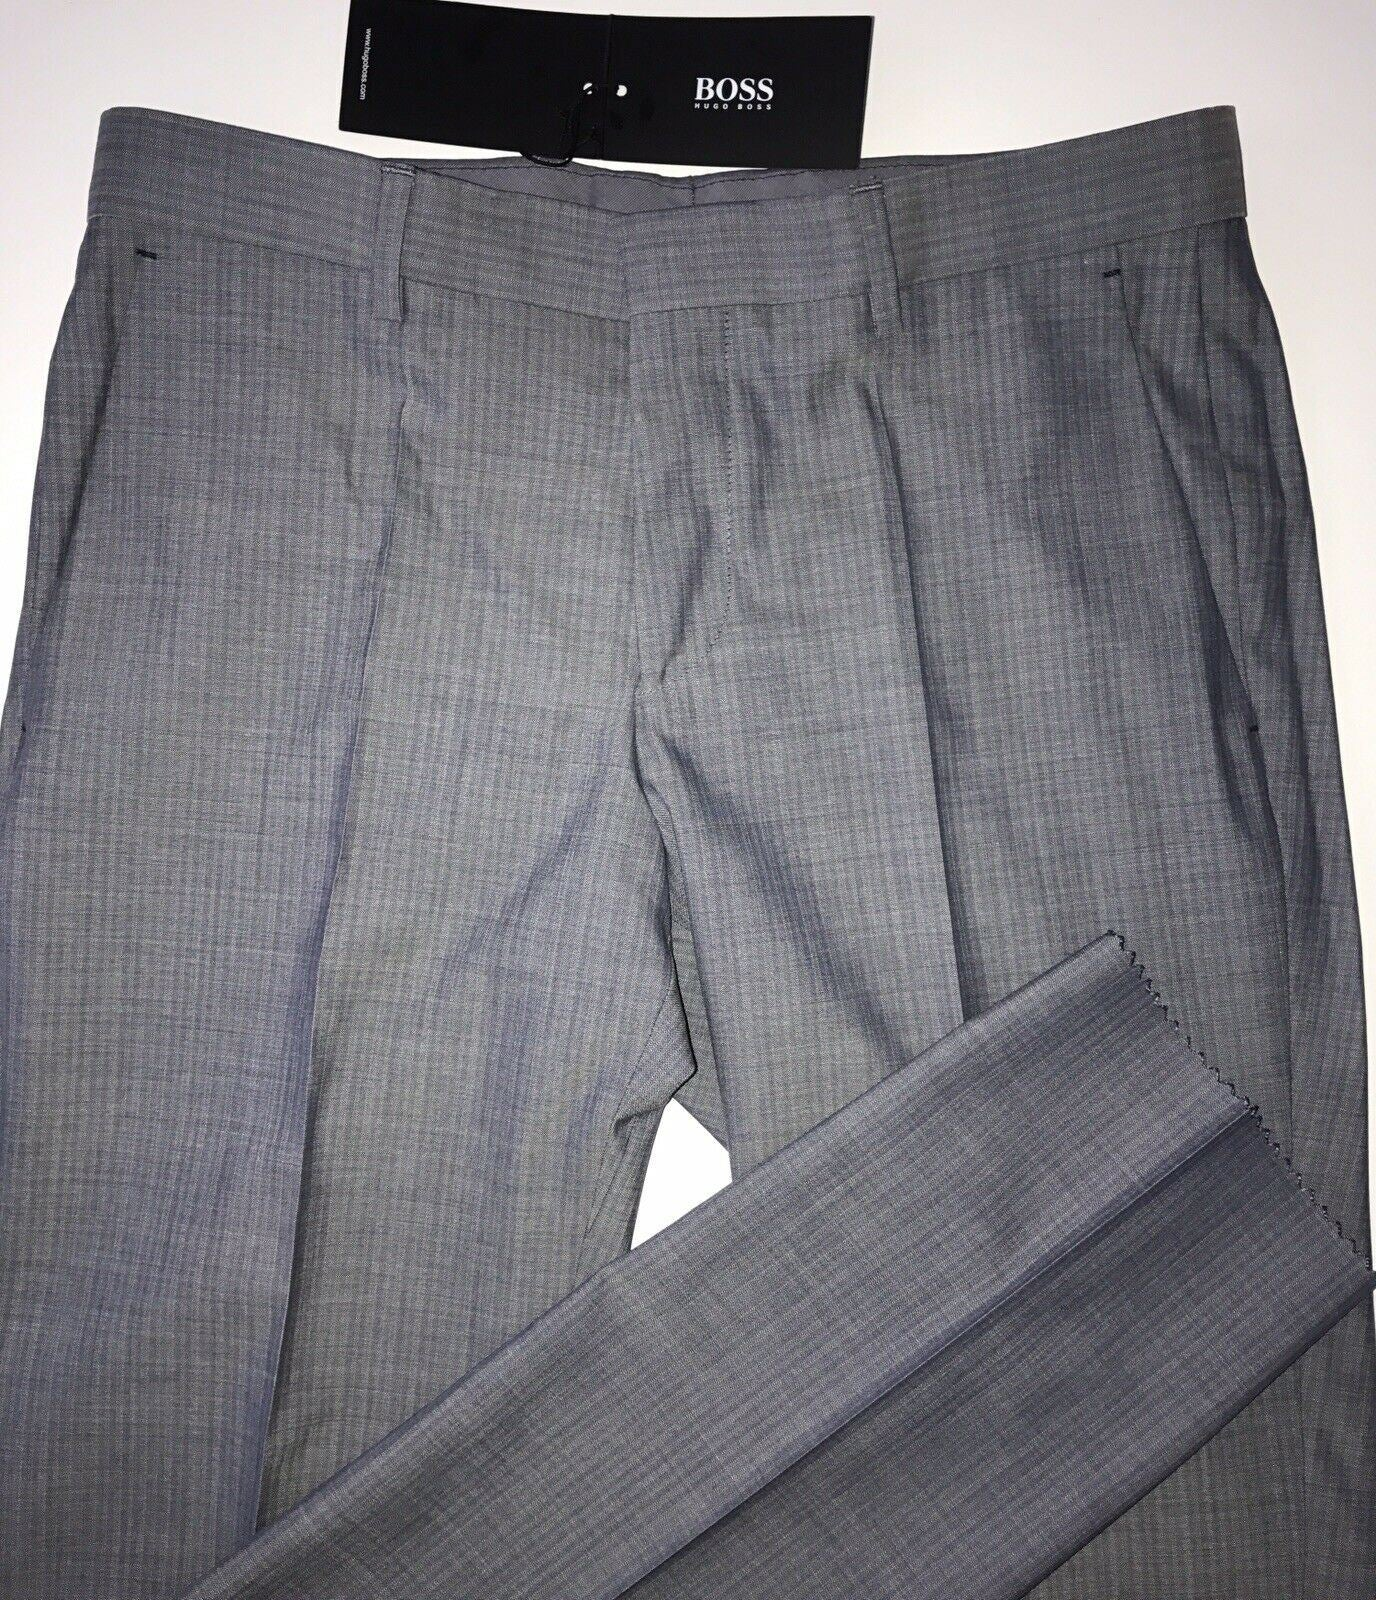 NWT $285 Boss Hugo Boss Melancey_1 Mens Open Blue Wool Dress Pants Size 30R US